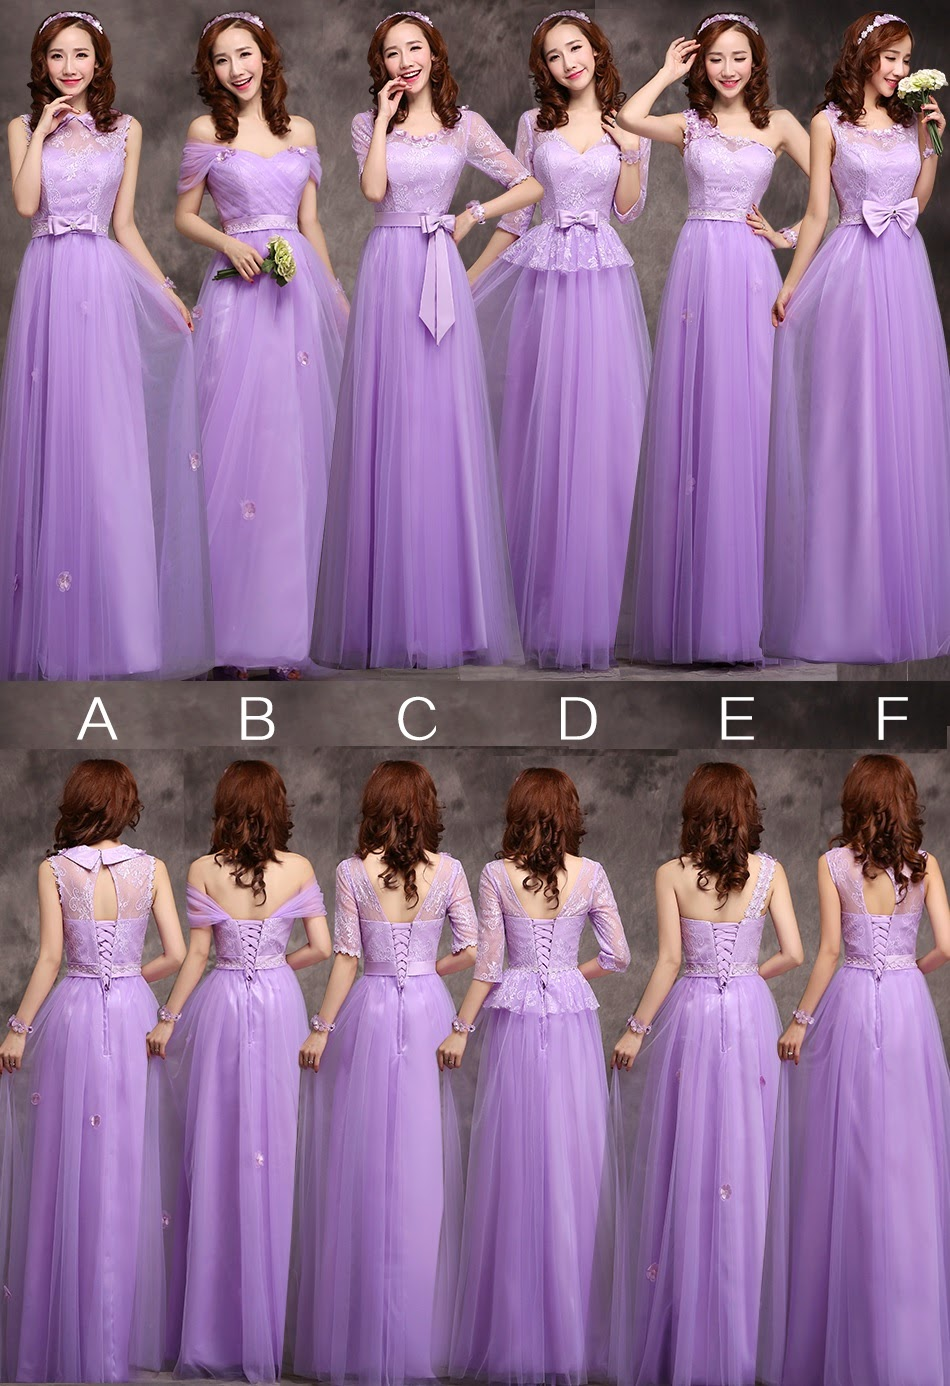 Duchess Fashion: Malaysia Online Clothes Shopping: Twinkle Floral ...